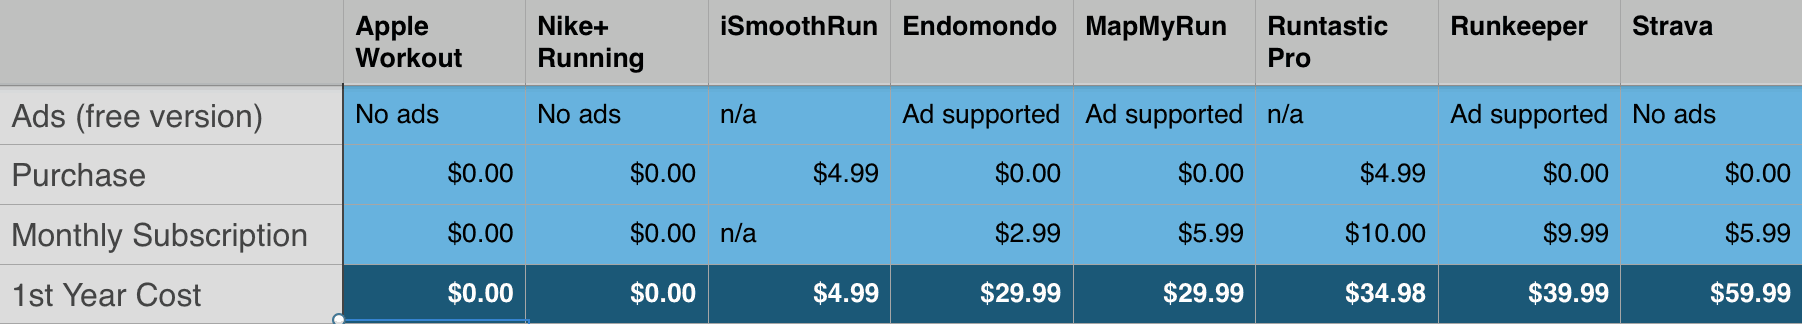 Comparing the price of running apps